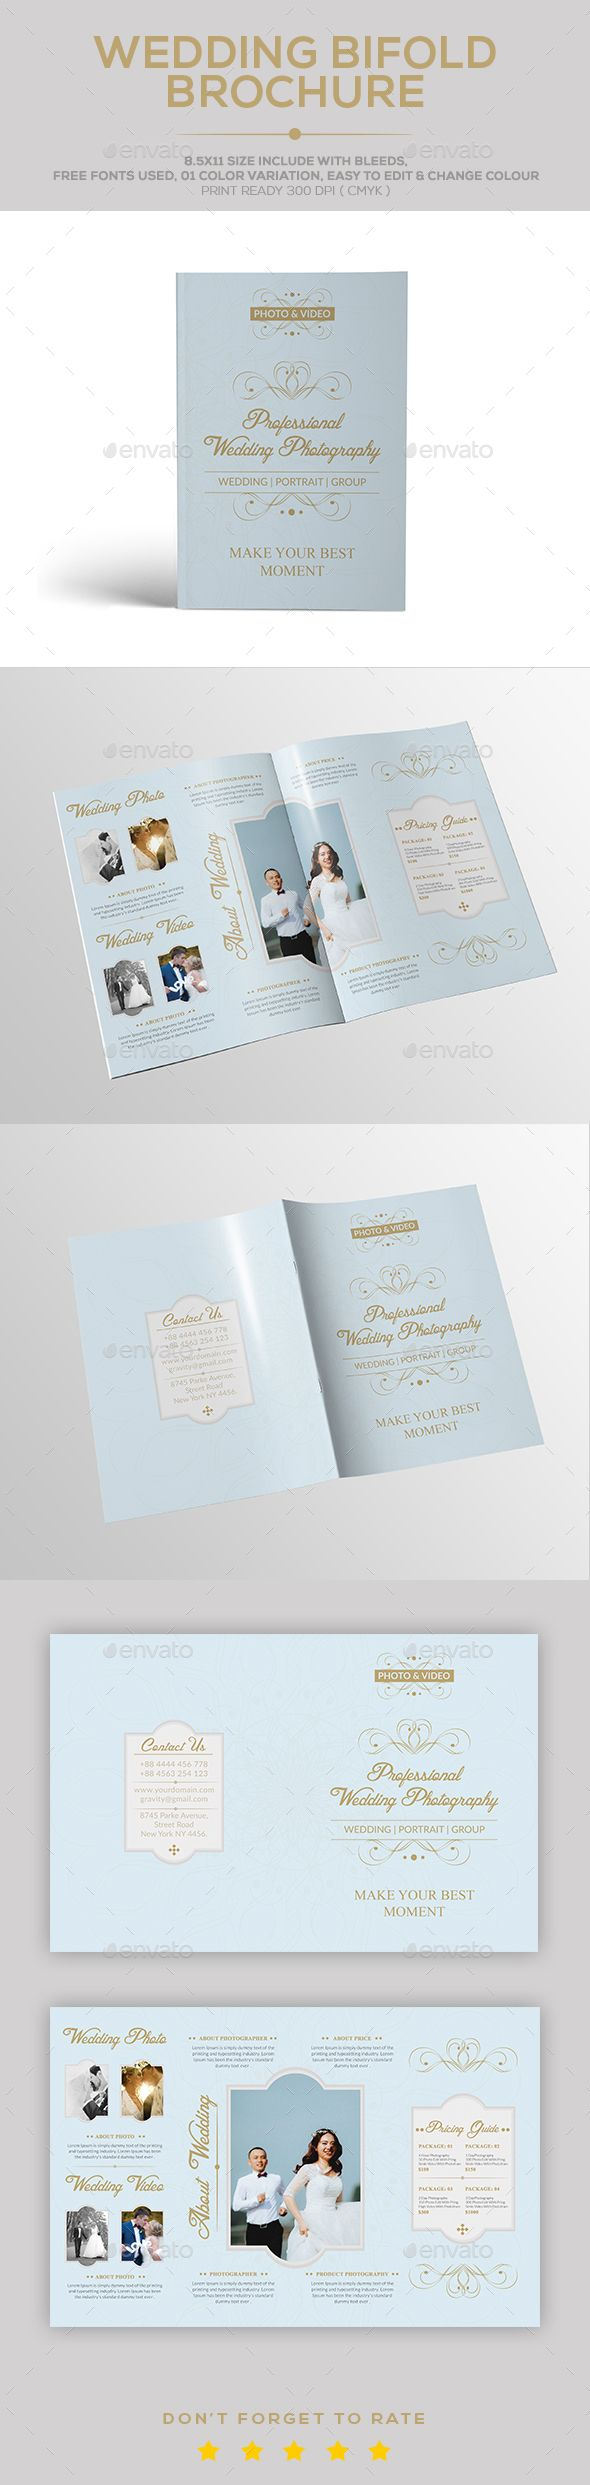 wedding brochure template this is a wedding brochure template this